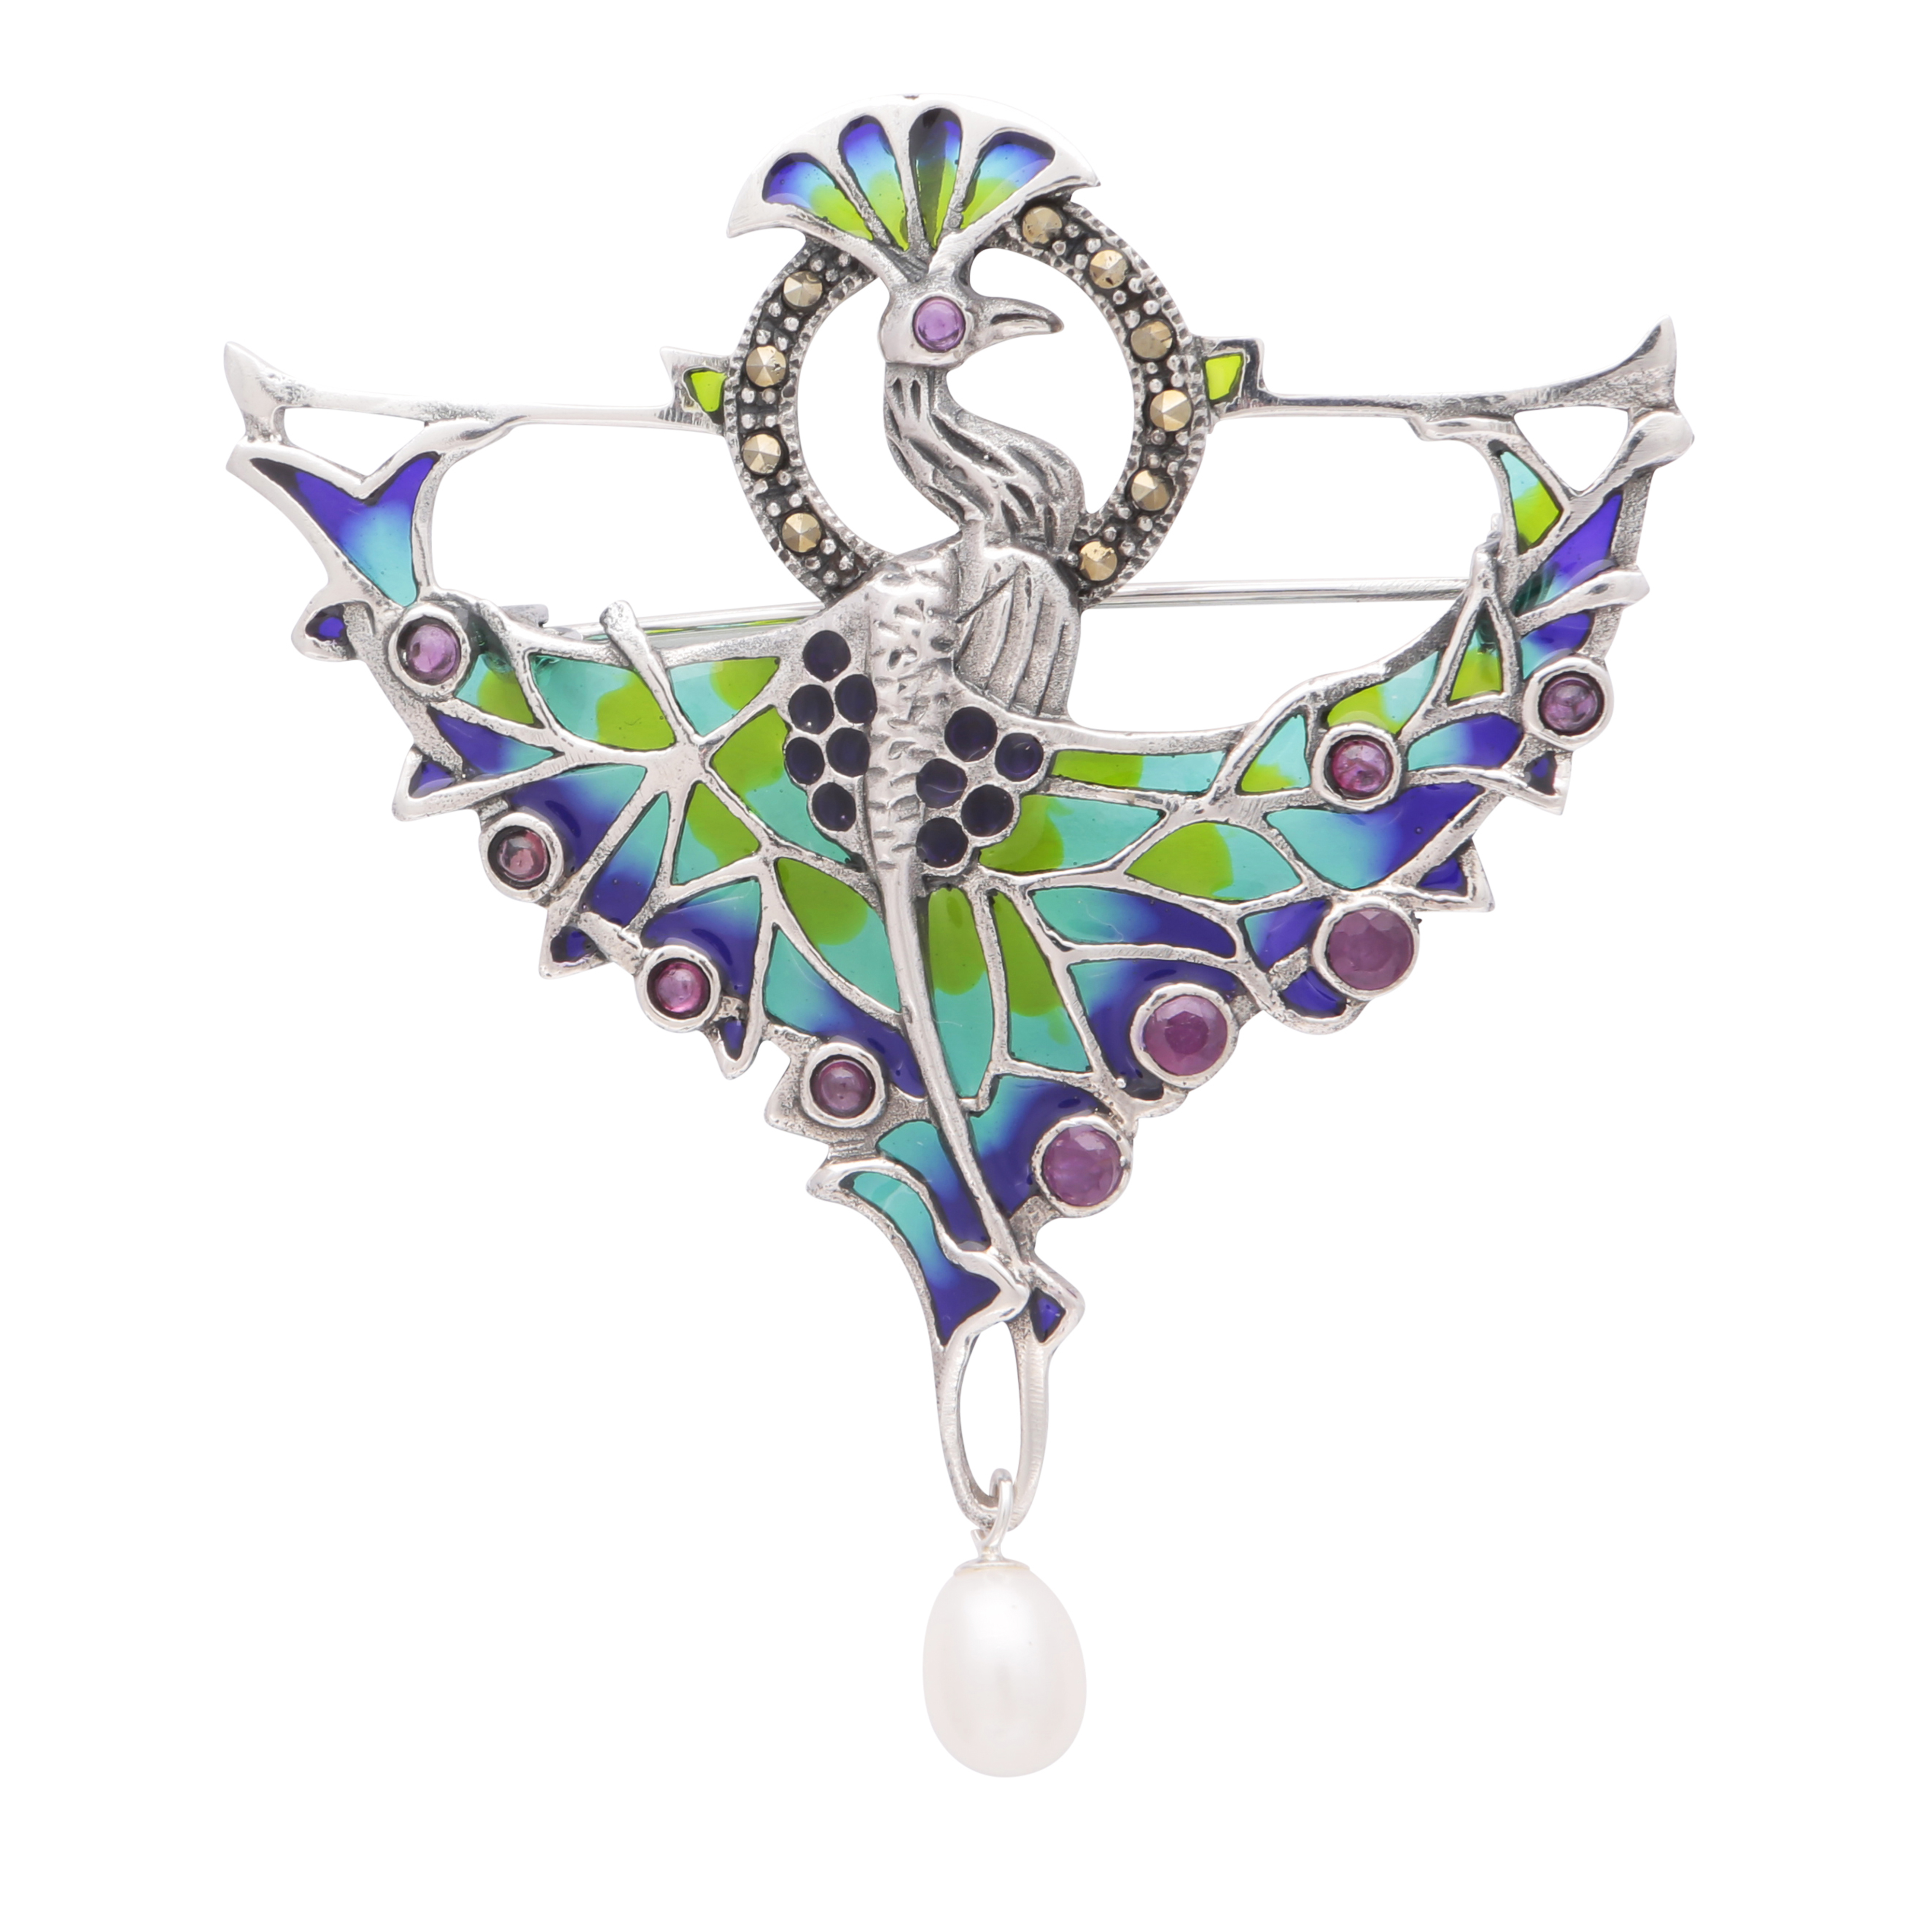 Los 173 - A plique a jour enamel and pearl pendant / brooch in sterling silver depicting a peacock with its